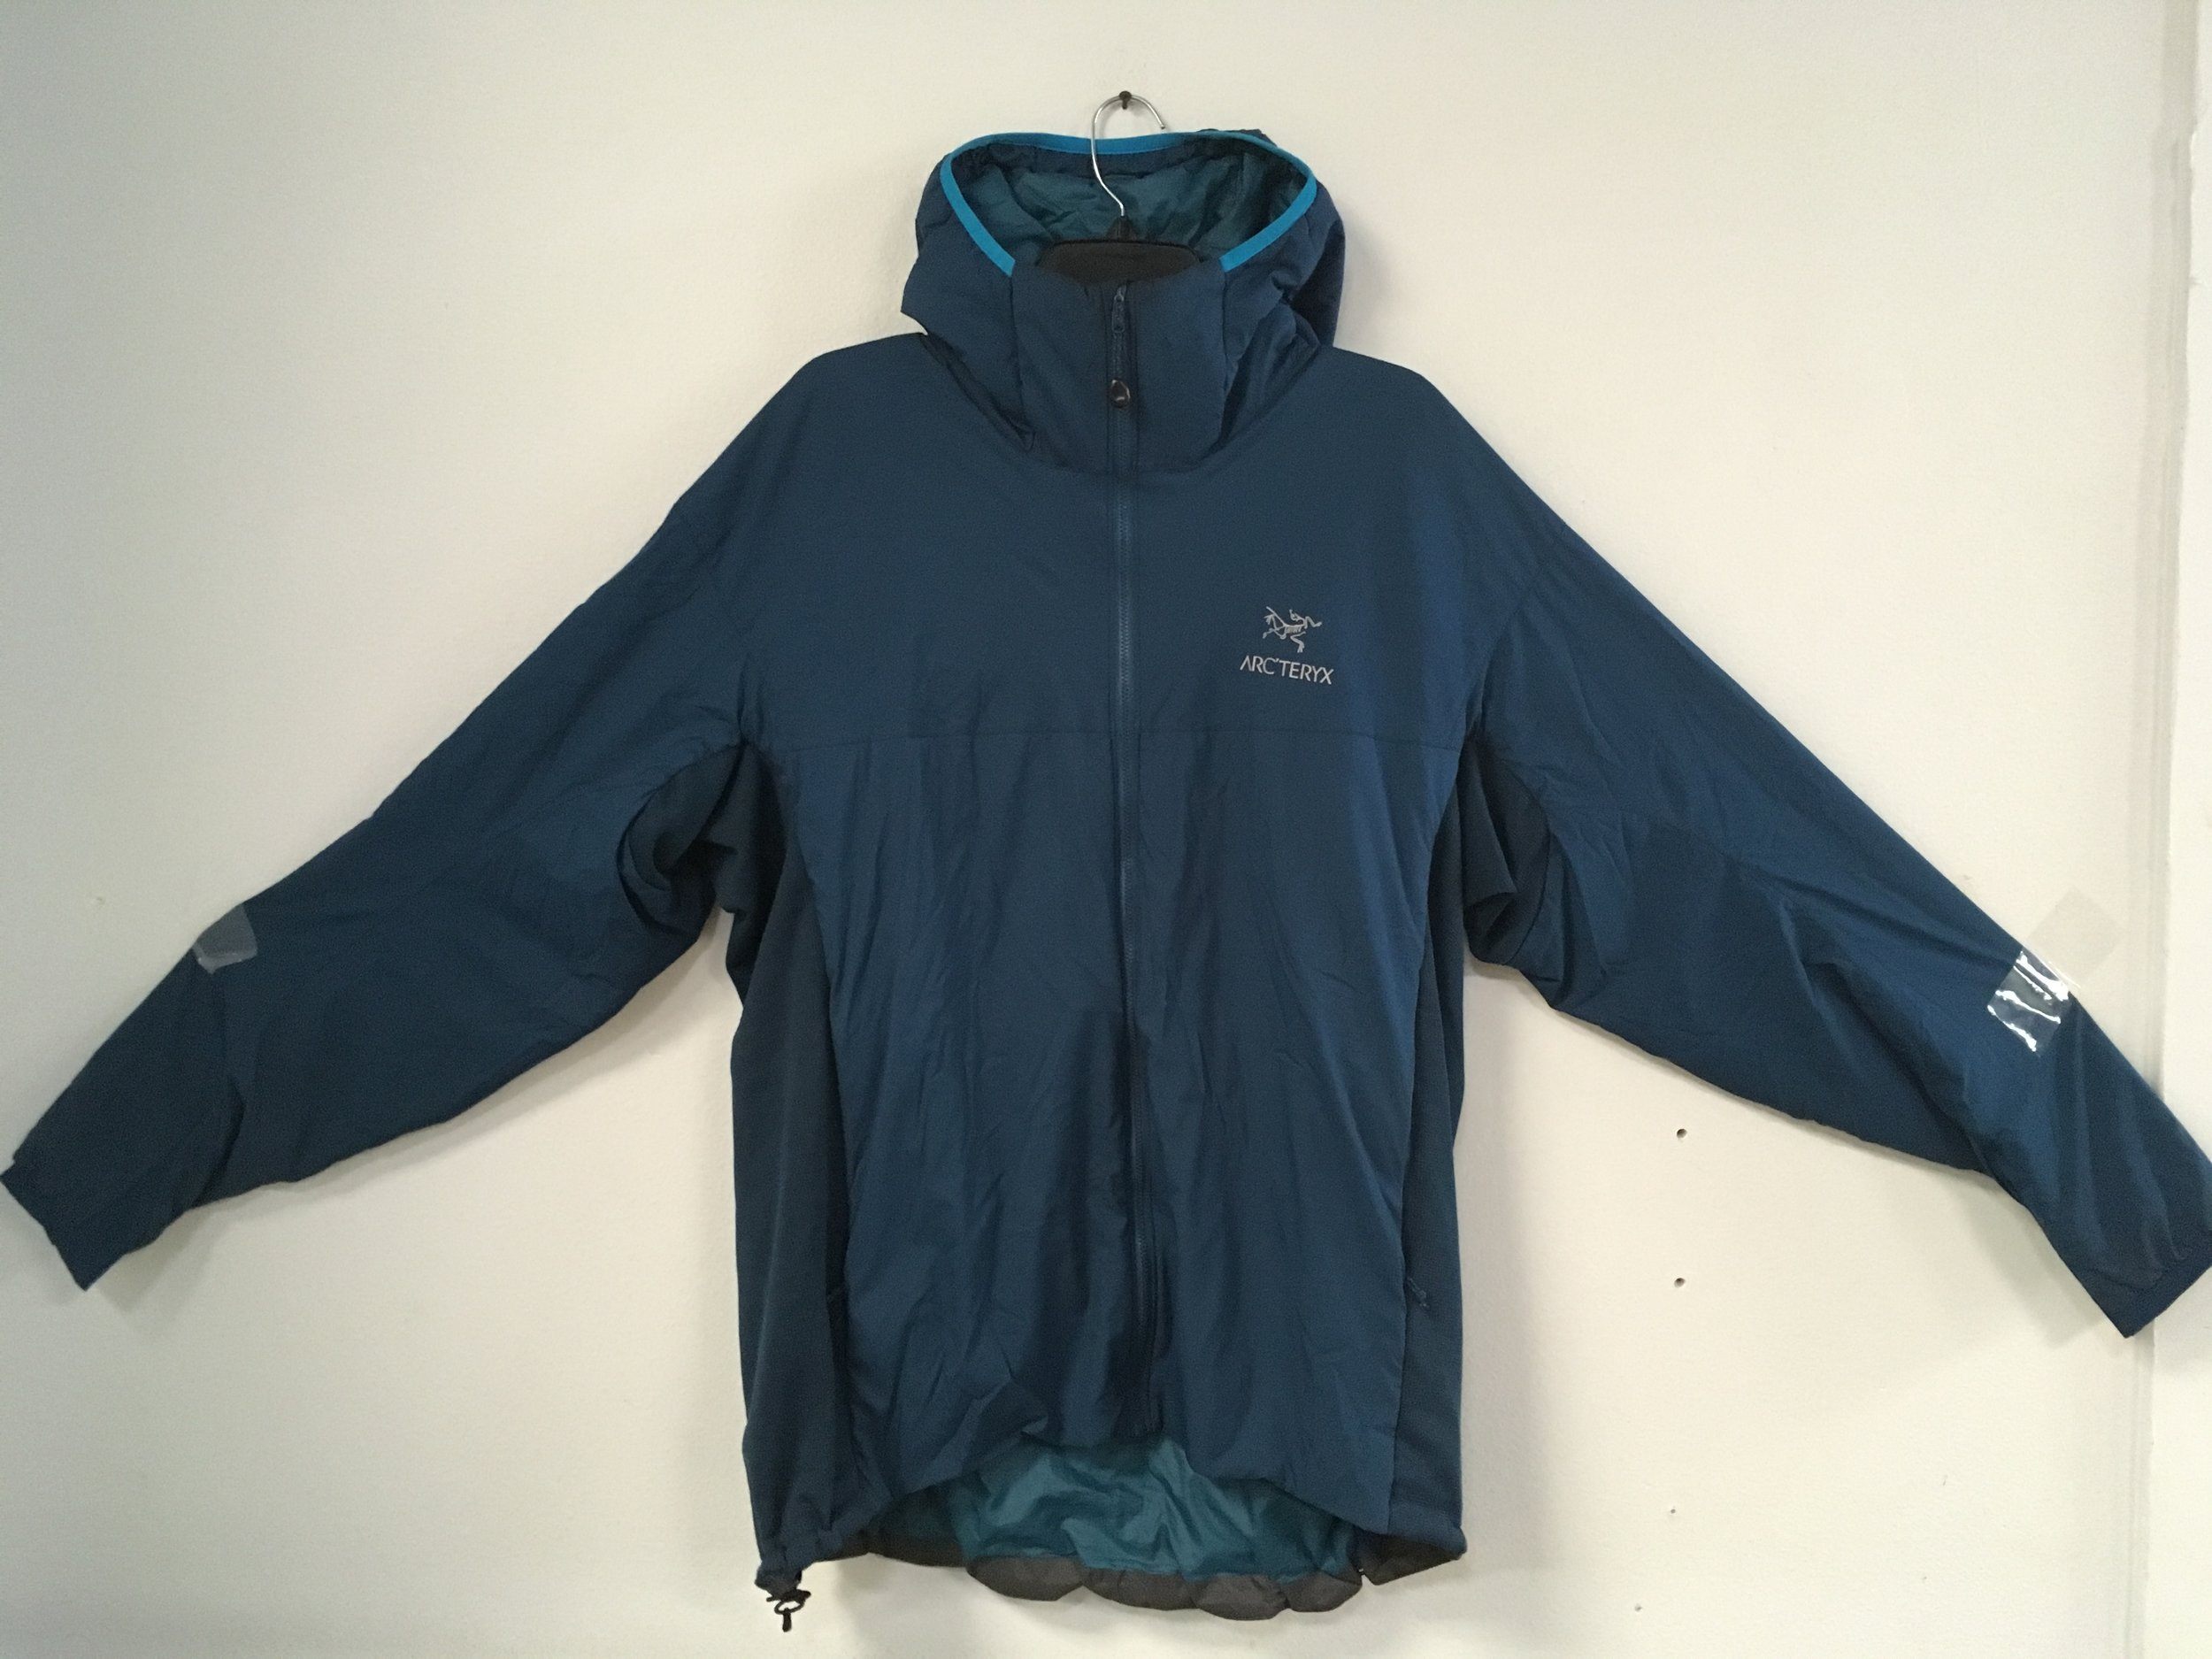 Get ready for the cold with Arcteryx's Atom LT jacket! The atom is a mid layer jacket with a wind and moisture resistant outer shell. Retail for the jacket is listed at $260 but we can keep you warm for $119! The size is a men's XL.